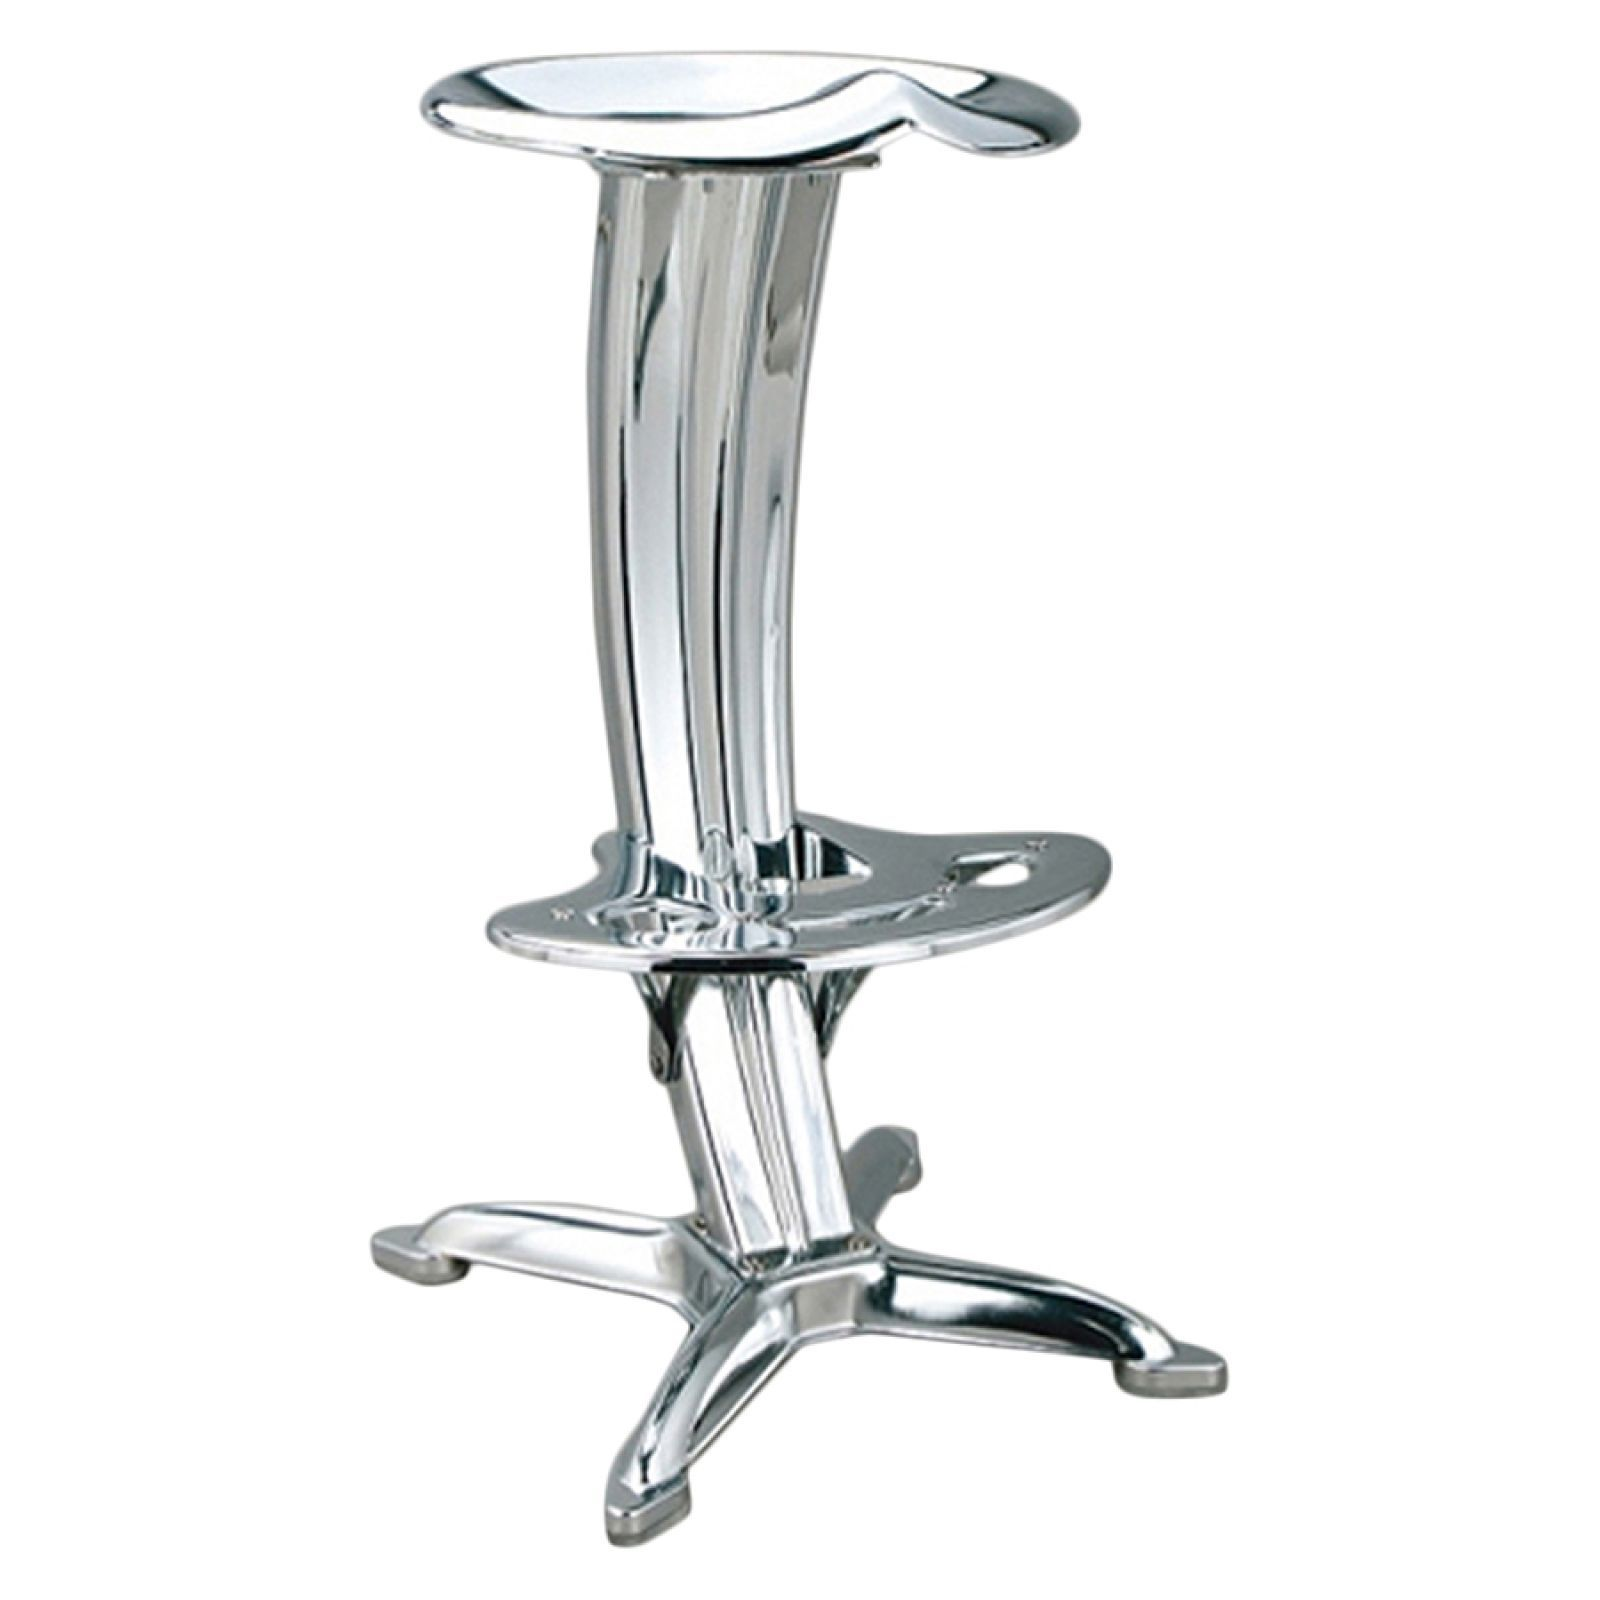 Wondrous Dulton Lotus Bar Stool Chrome Zanui Com Au Counter Onthecornerstone Fun Painted Chair Ideas Images Onthecornerstoneorg